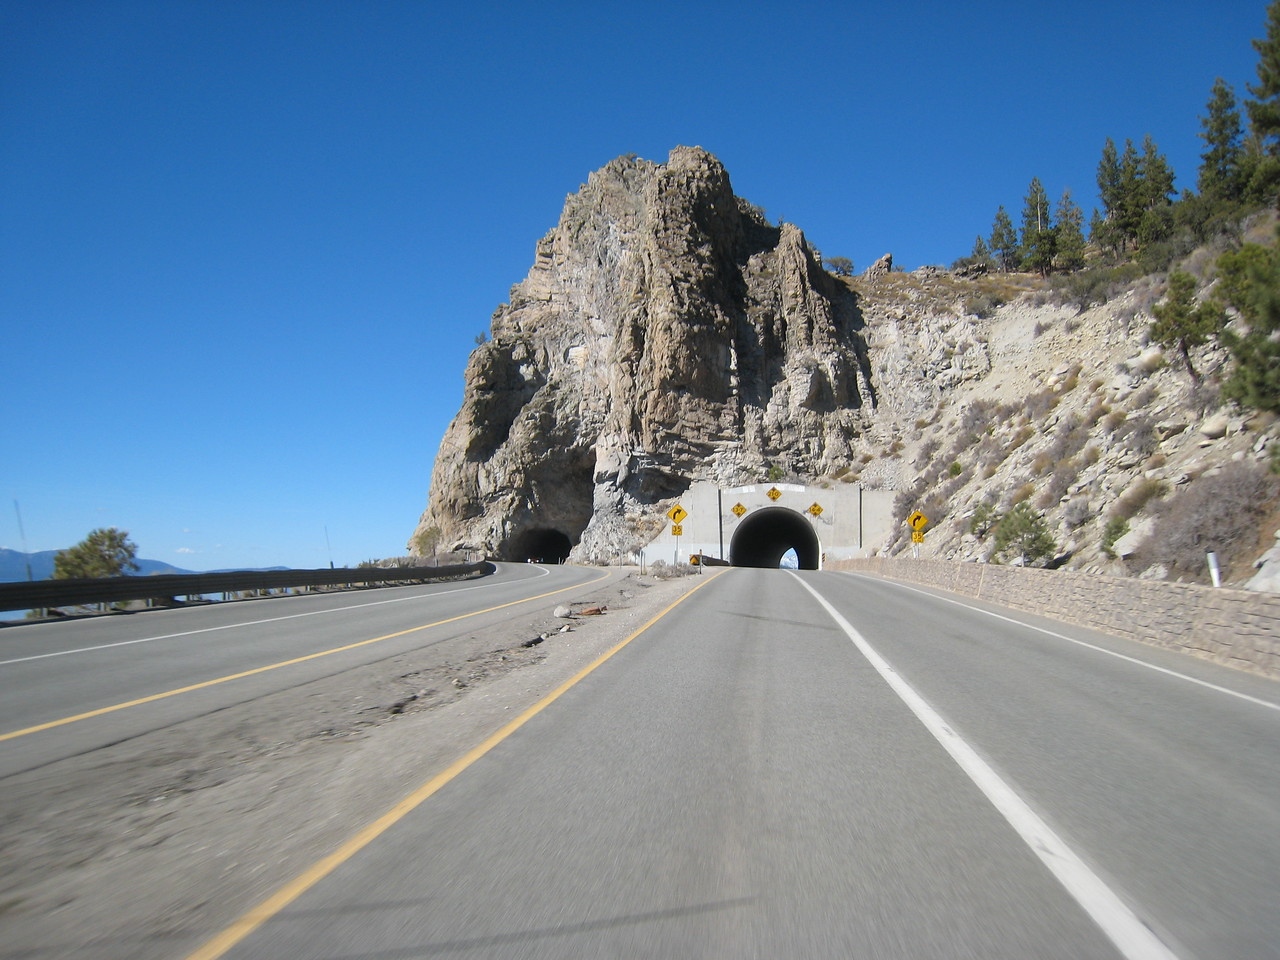 Approaching the tunnels of Cave Rock as I head back towards Highway 50 and another spirited ride home.